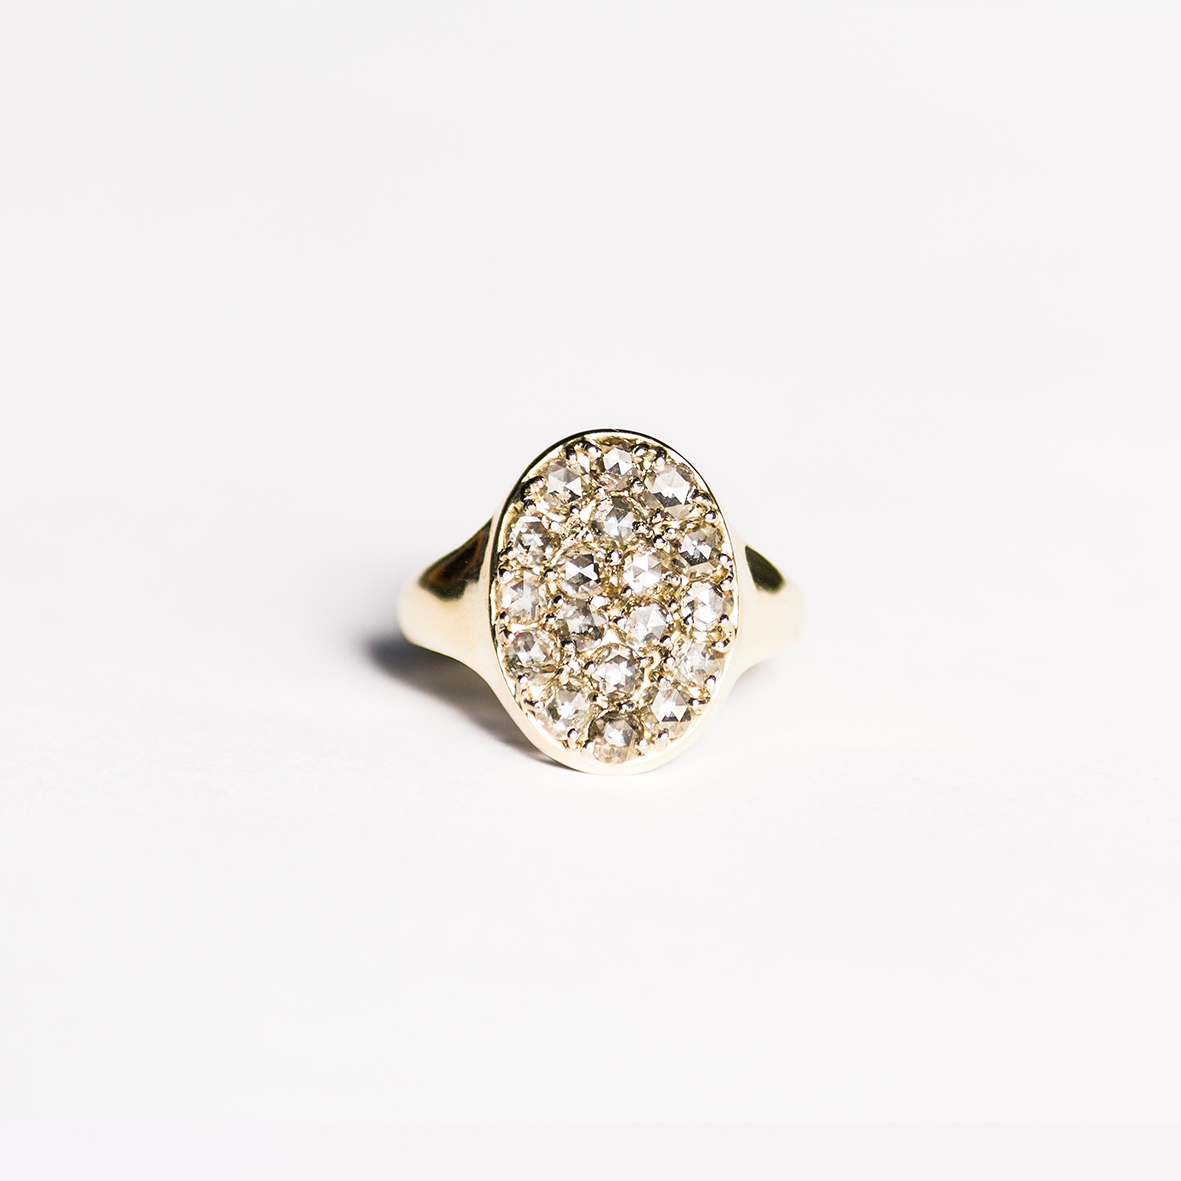 2. OONA_lotus_ficha1_signet diamond ring